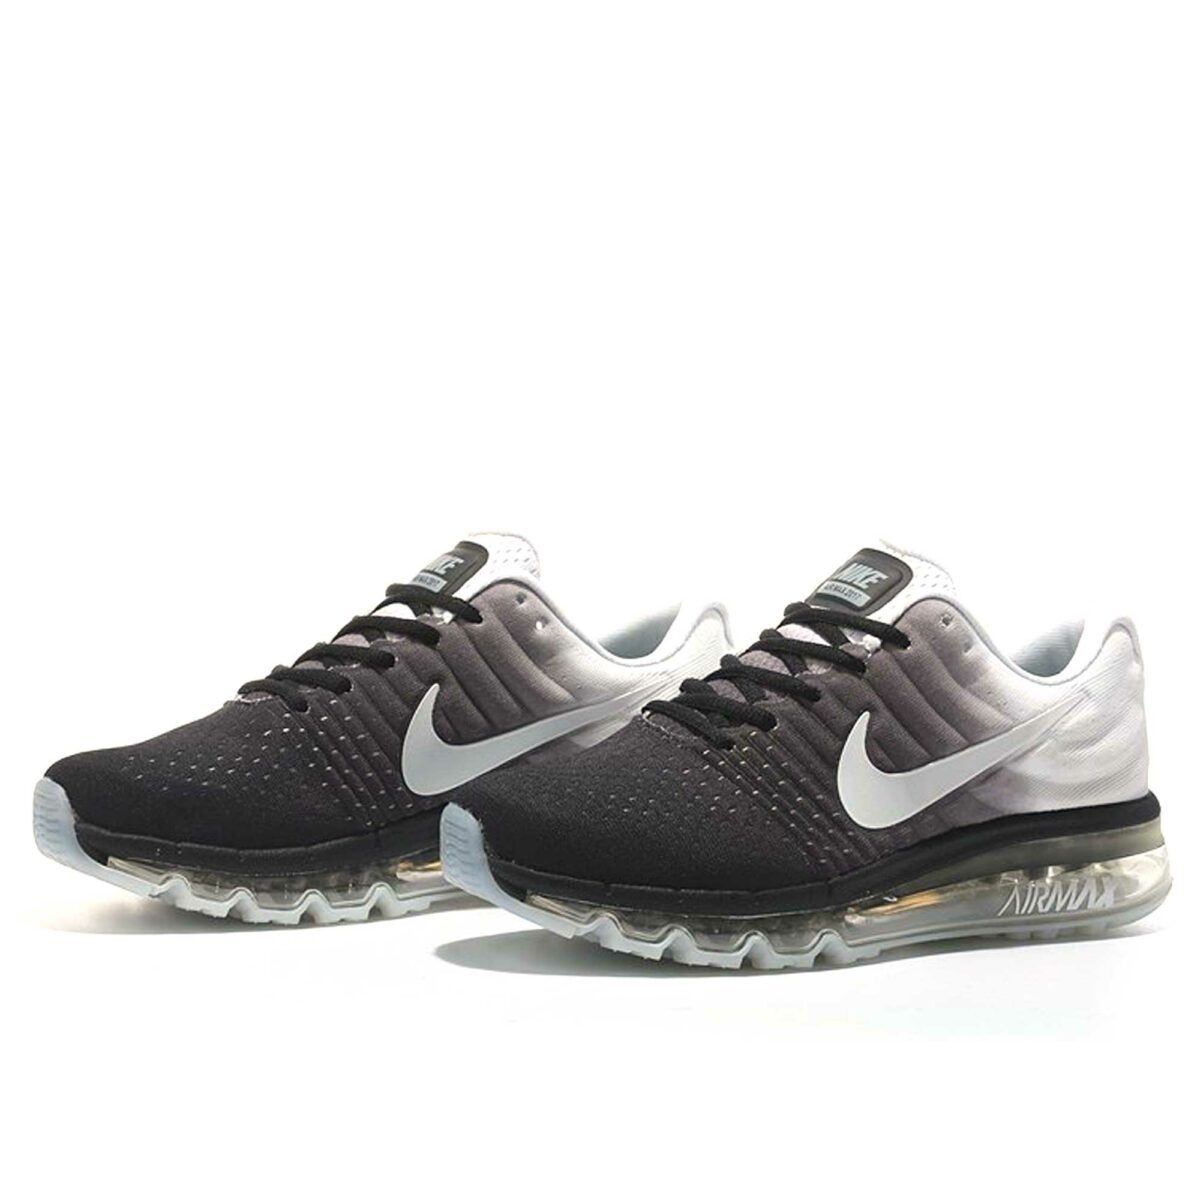 nike air max 2017 black white купить